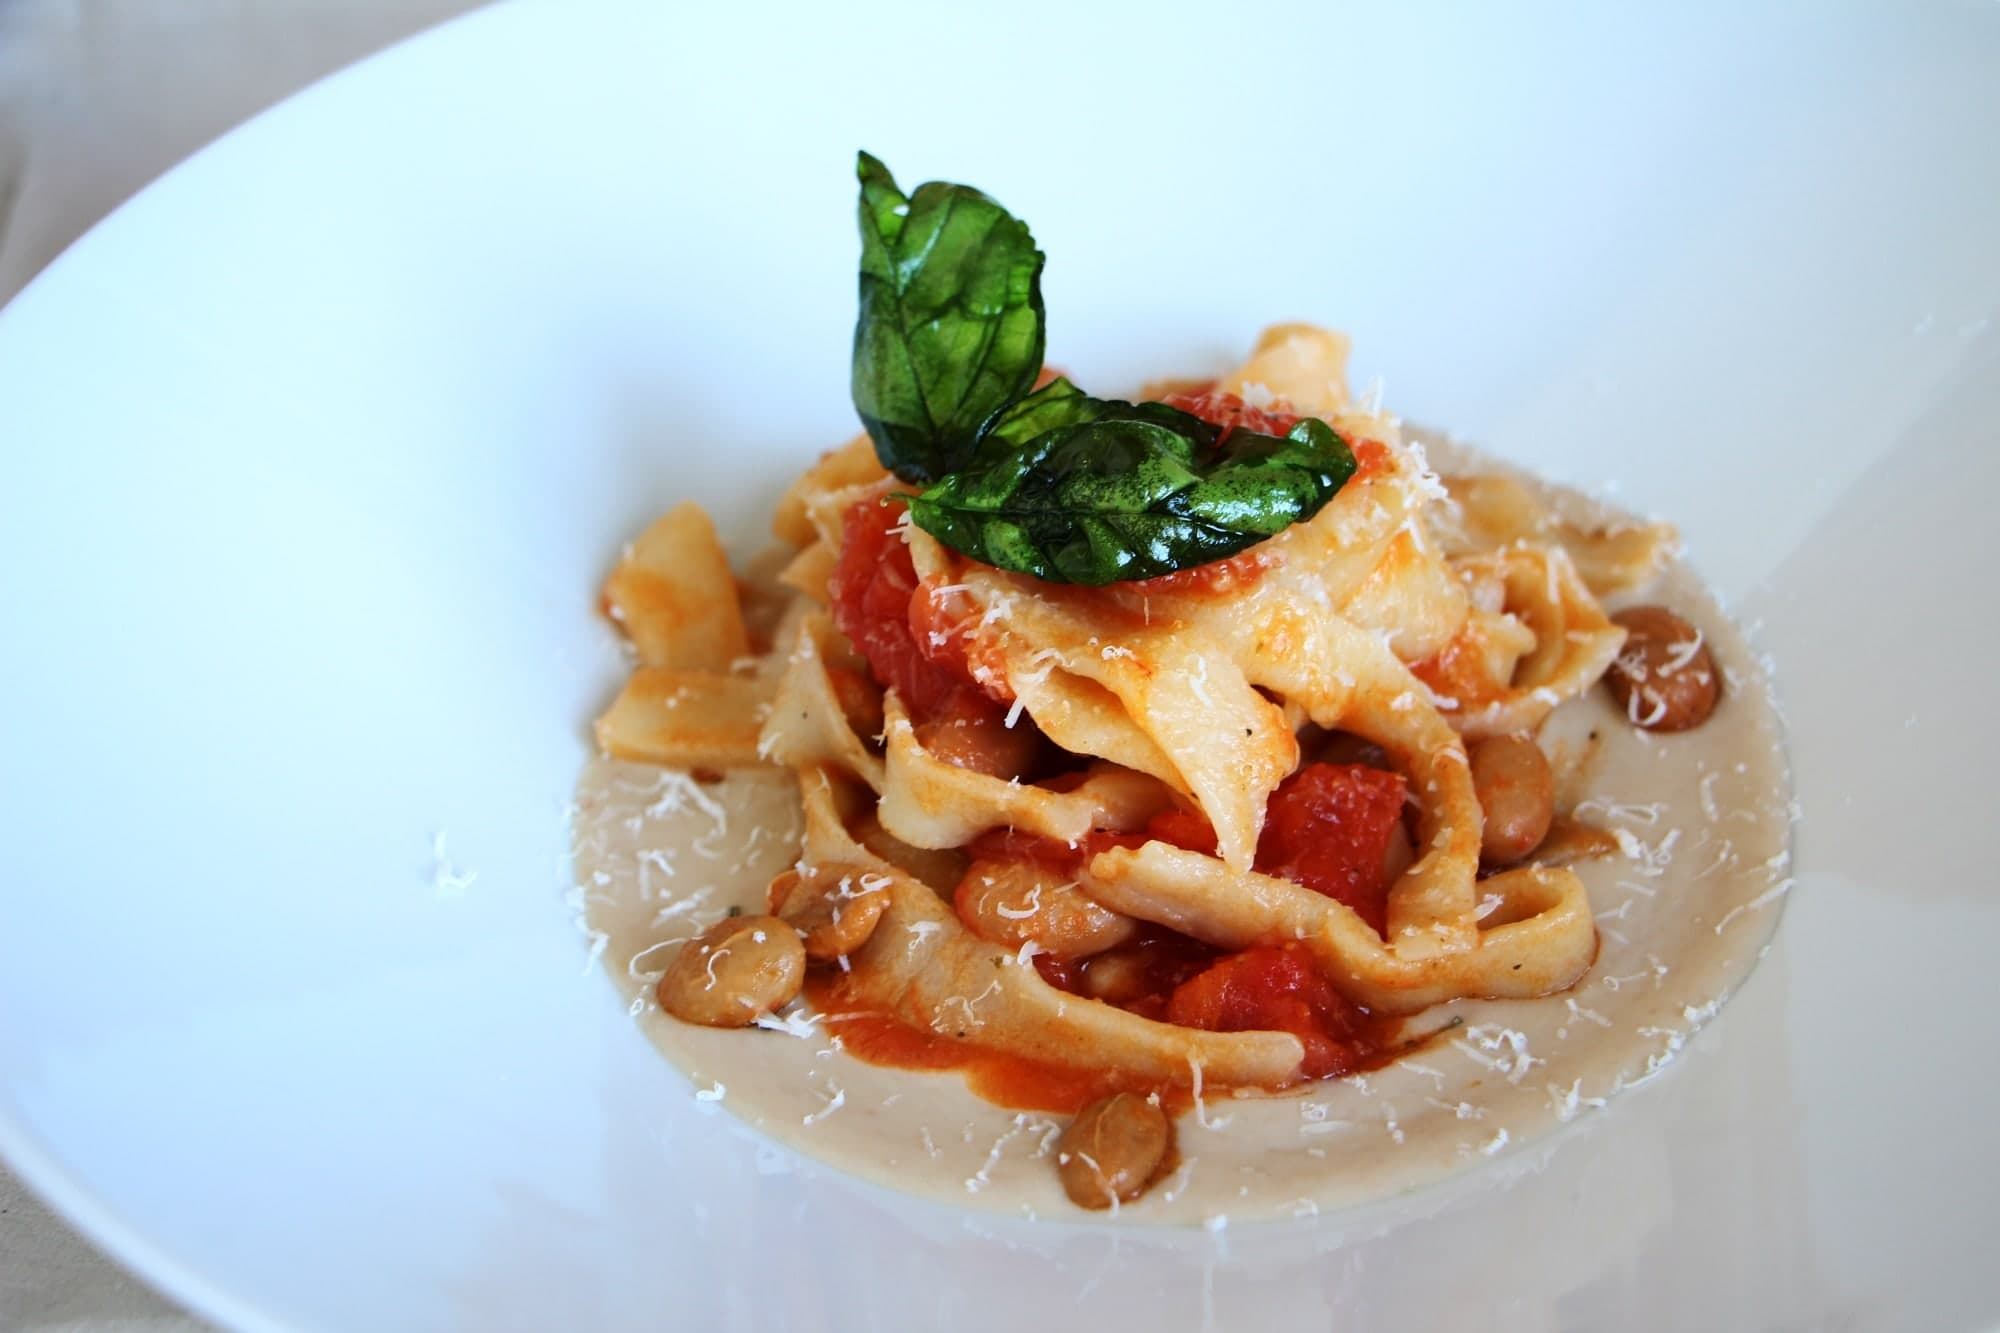 Pasta comes often when we talk about Italian main dishes.